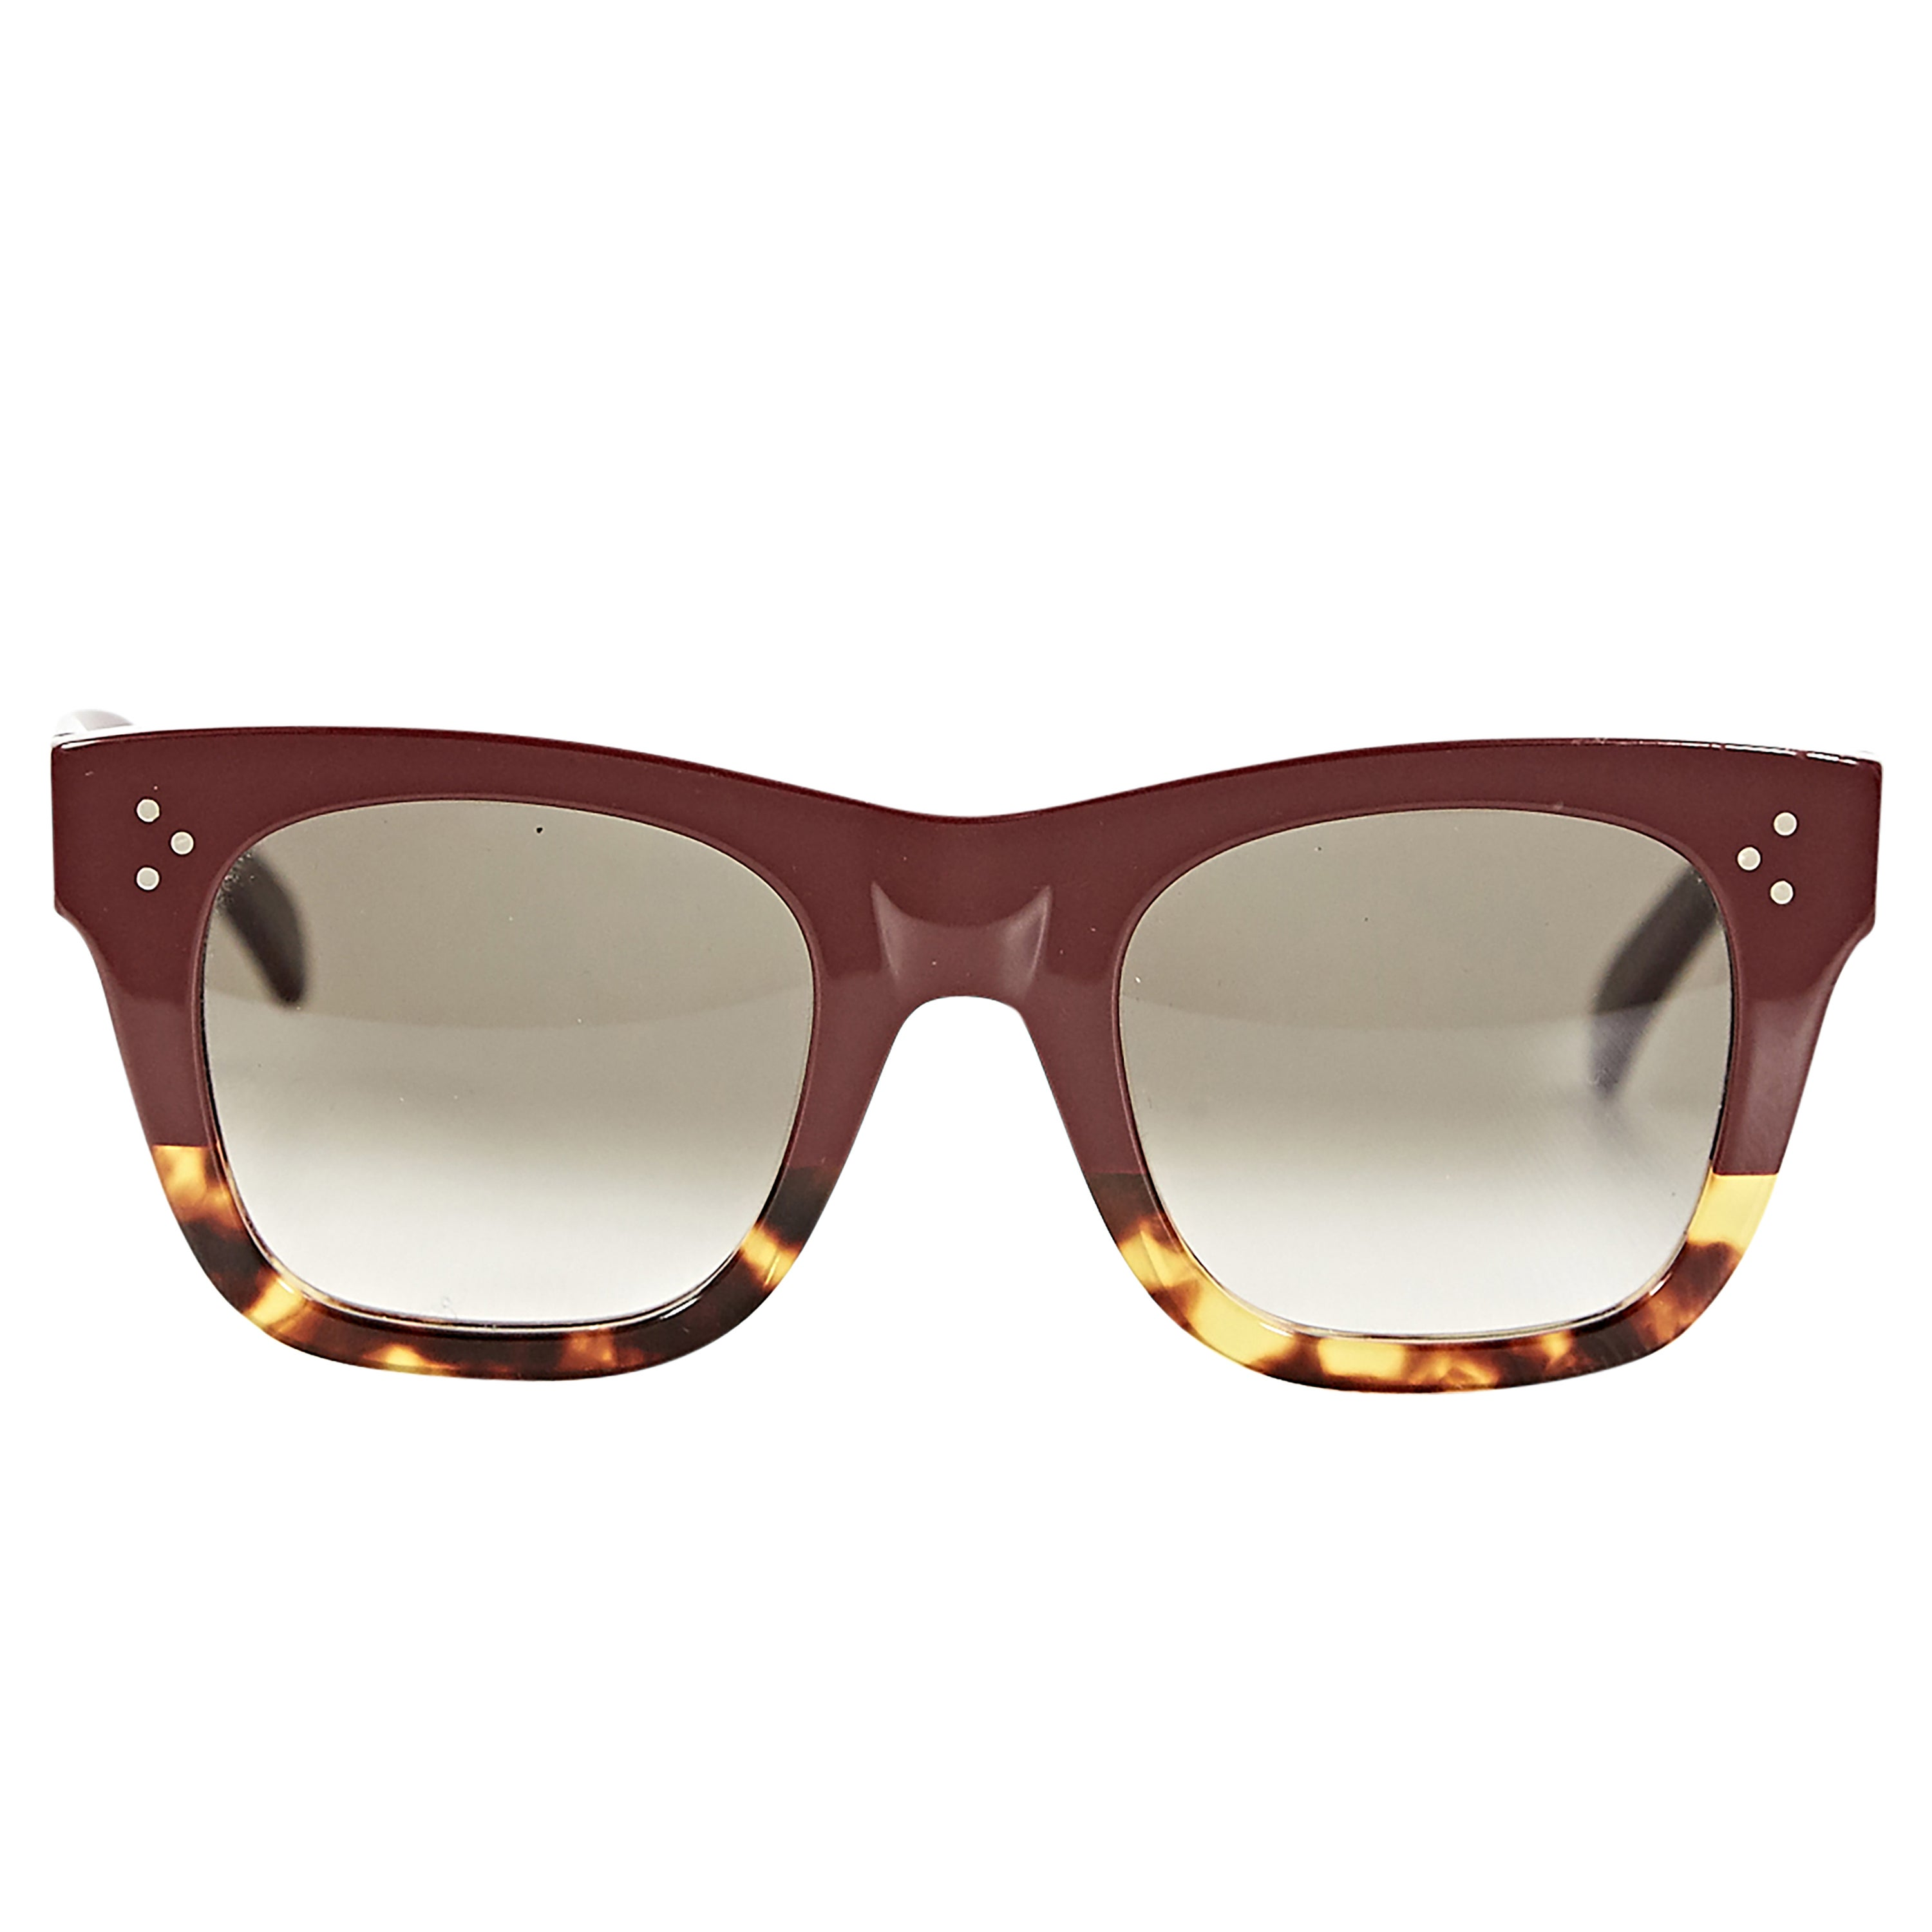 ac2bfee5fa Burgundy and Tortoise Celine Catherine Sunglasses at 1stdibs